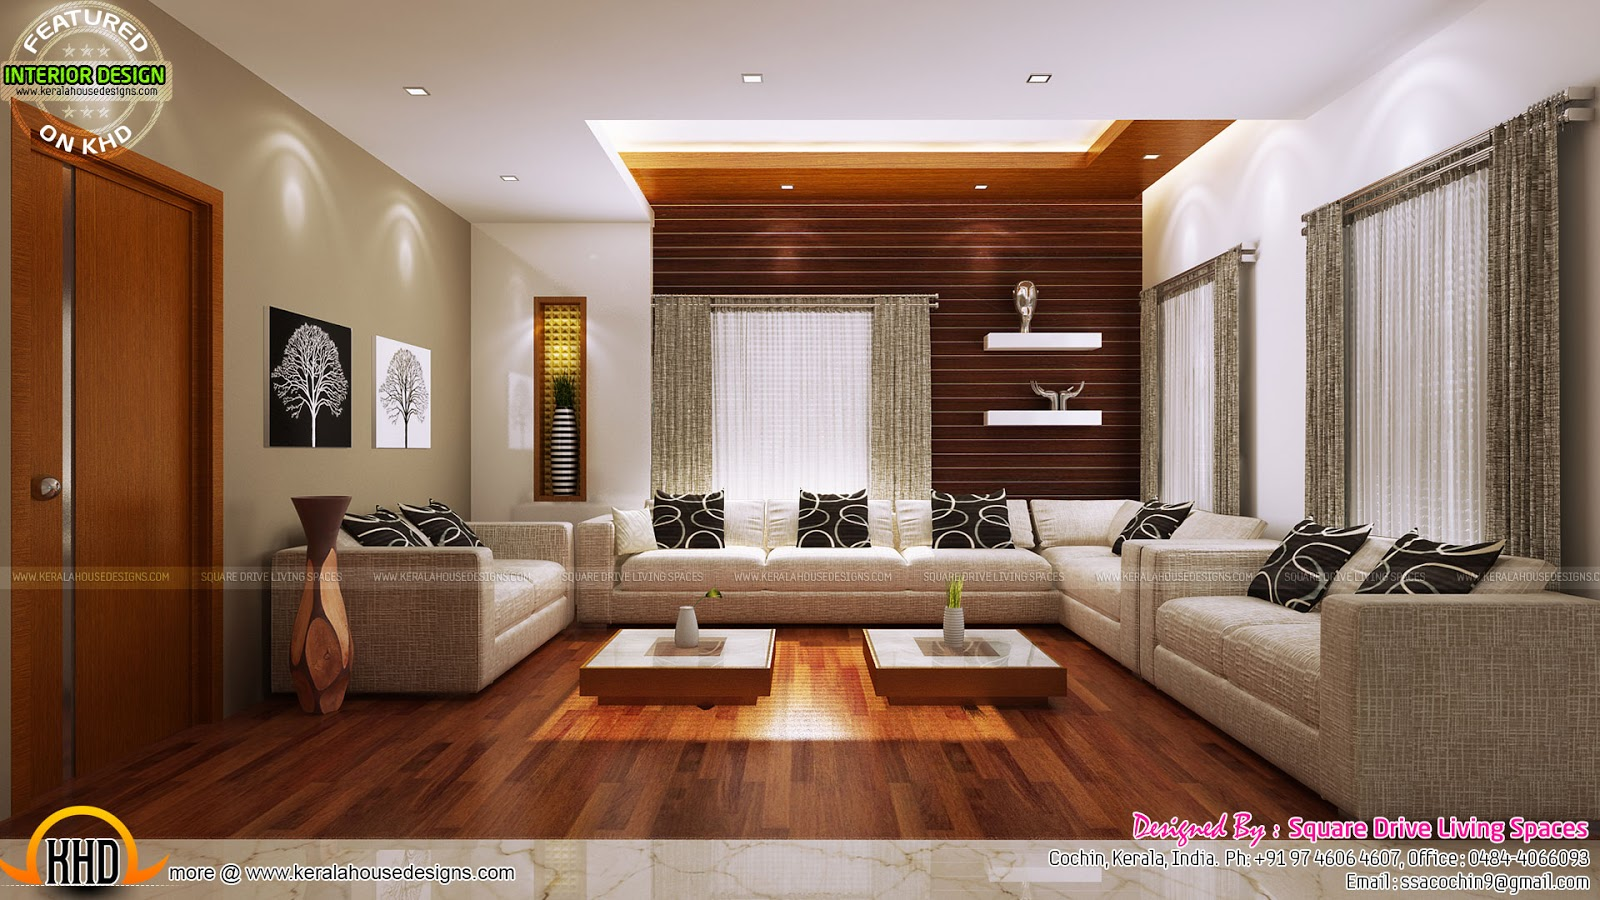 Excellent kerala interior design kerala home design and for Interior designs photo